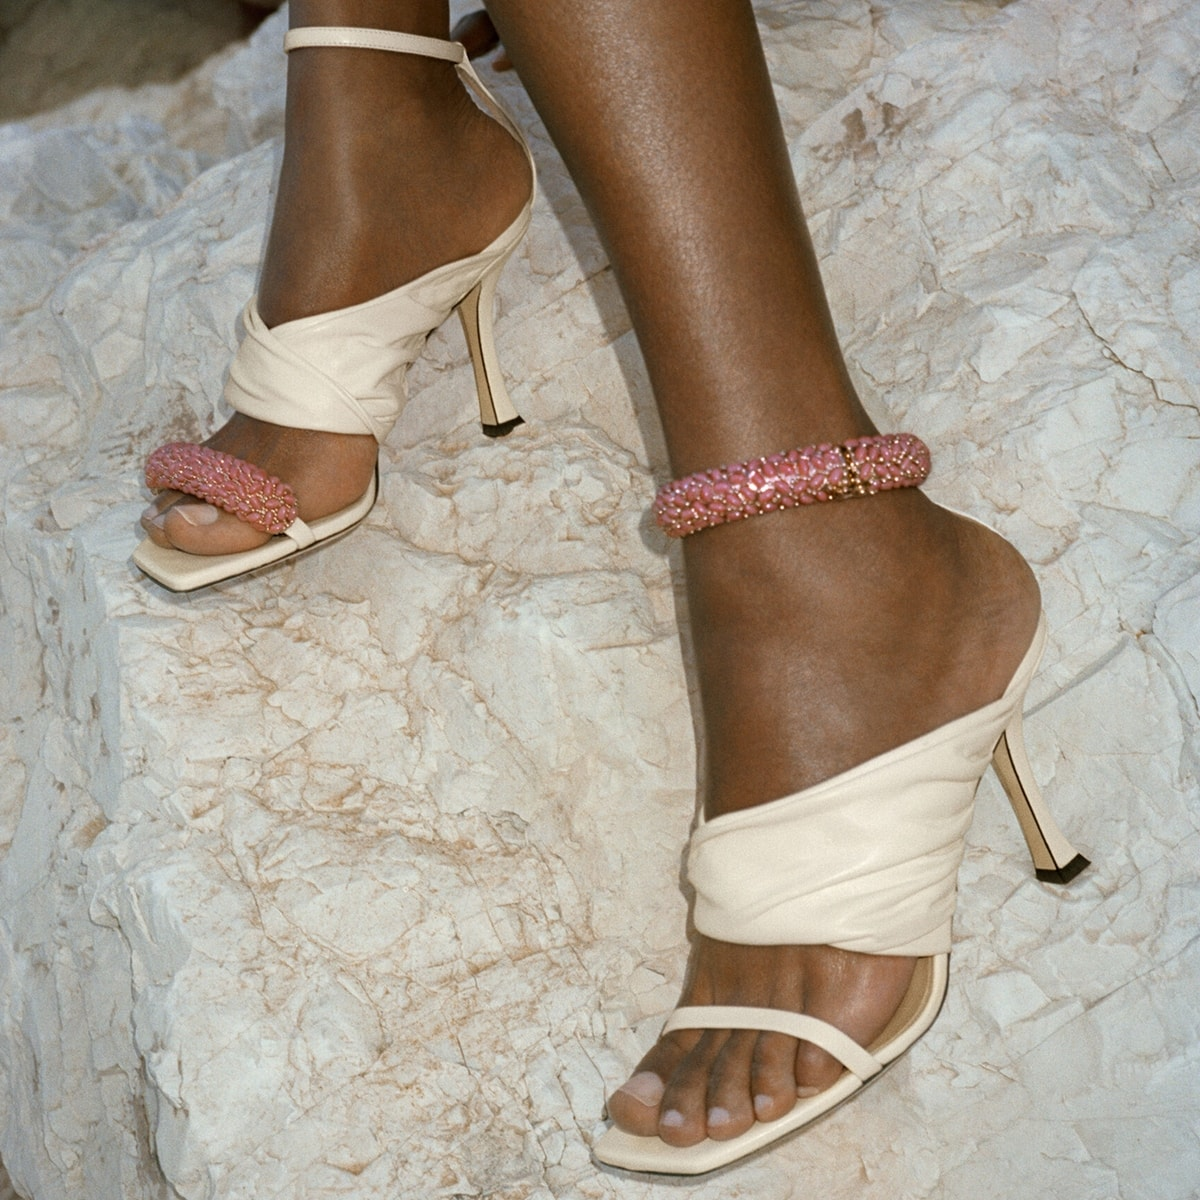 Jimmy Choo summer sandals featuring a light pink bracelet that is embellished with glass stones